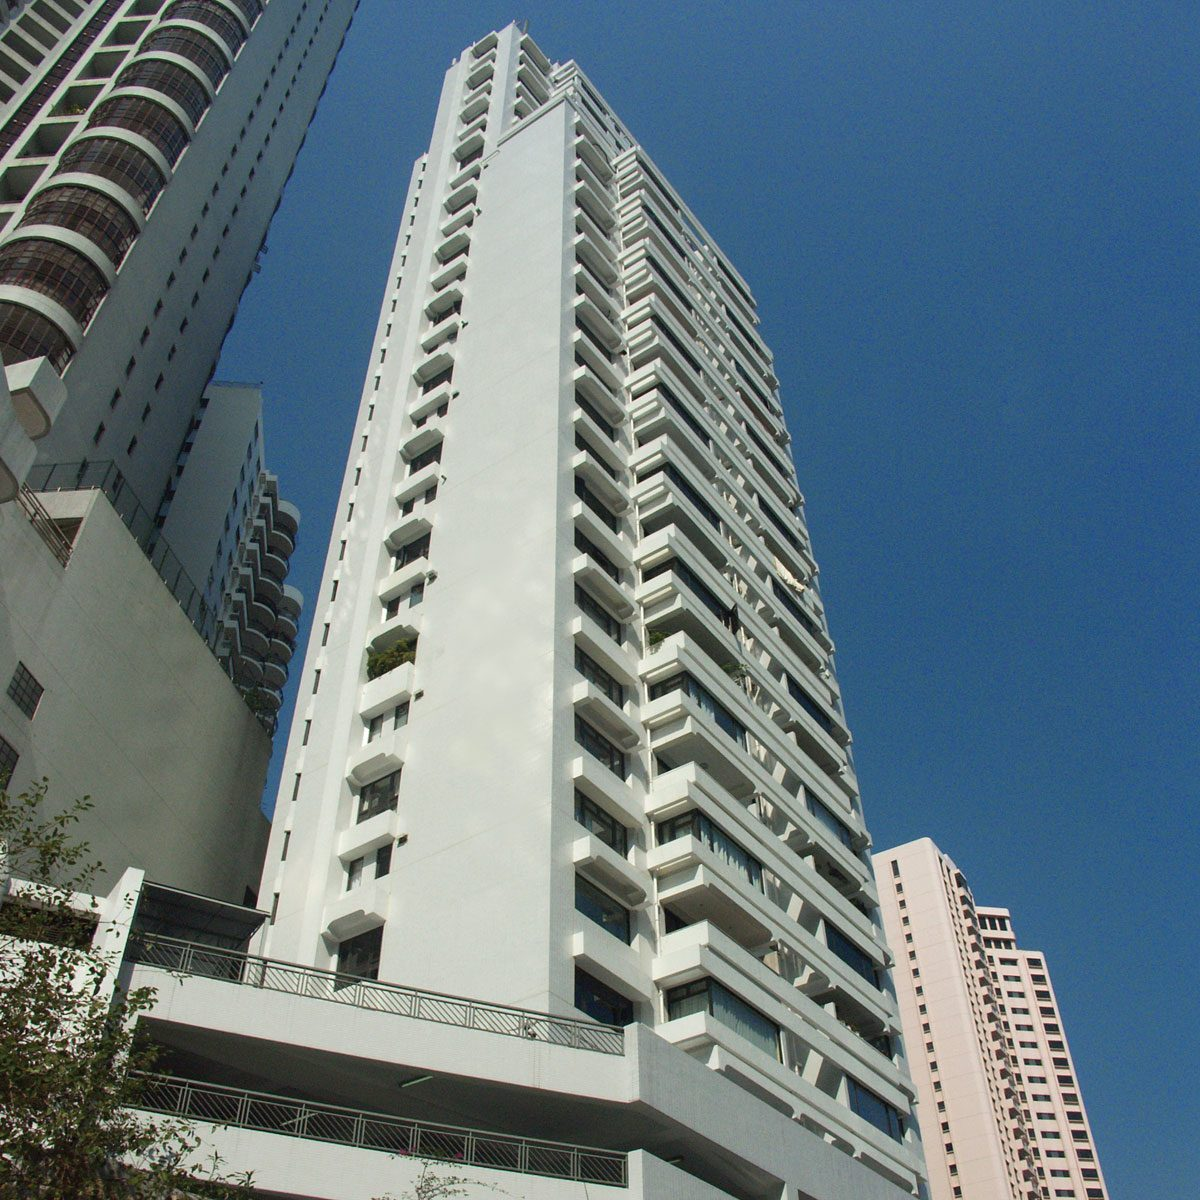 Villa Elegance, Renovation Works at 1 Robinson Road, Hong Kong